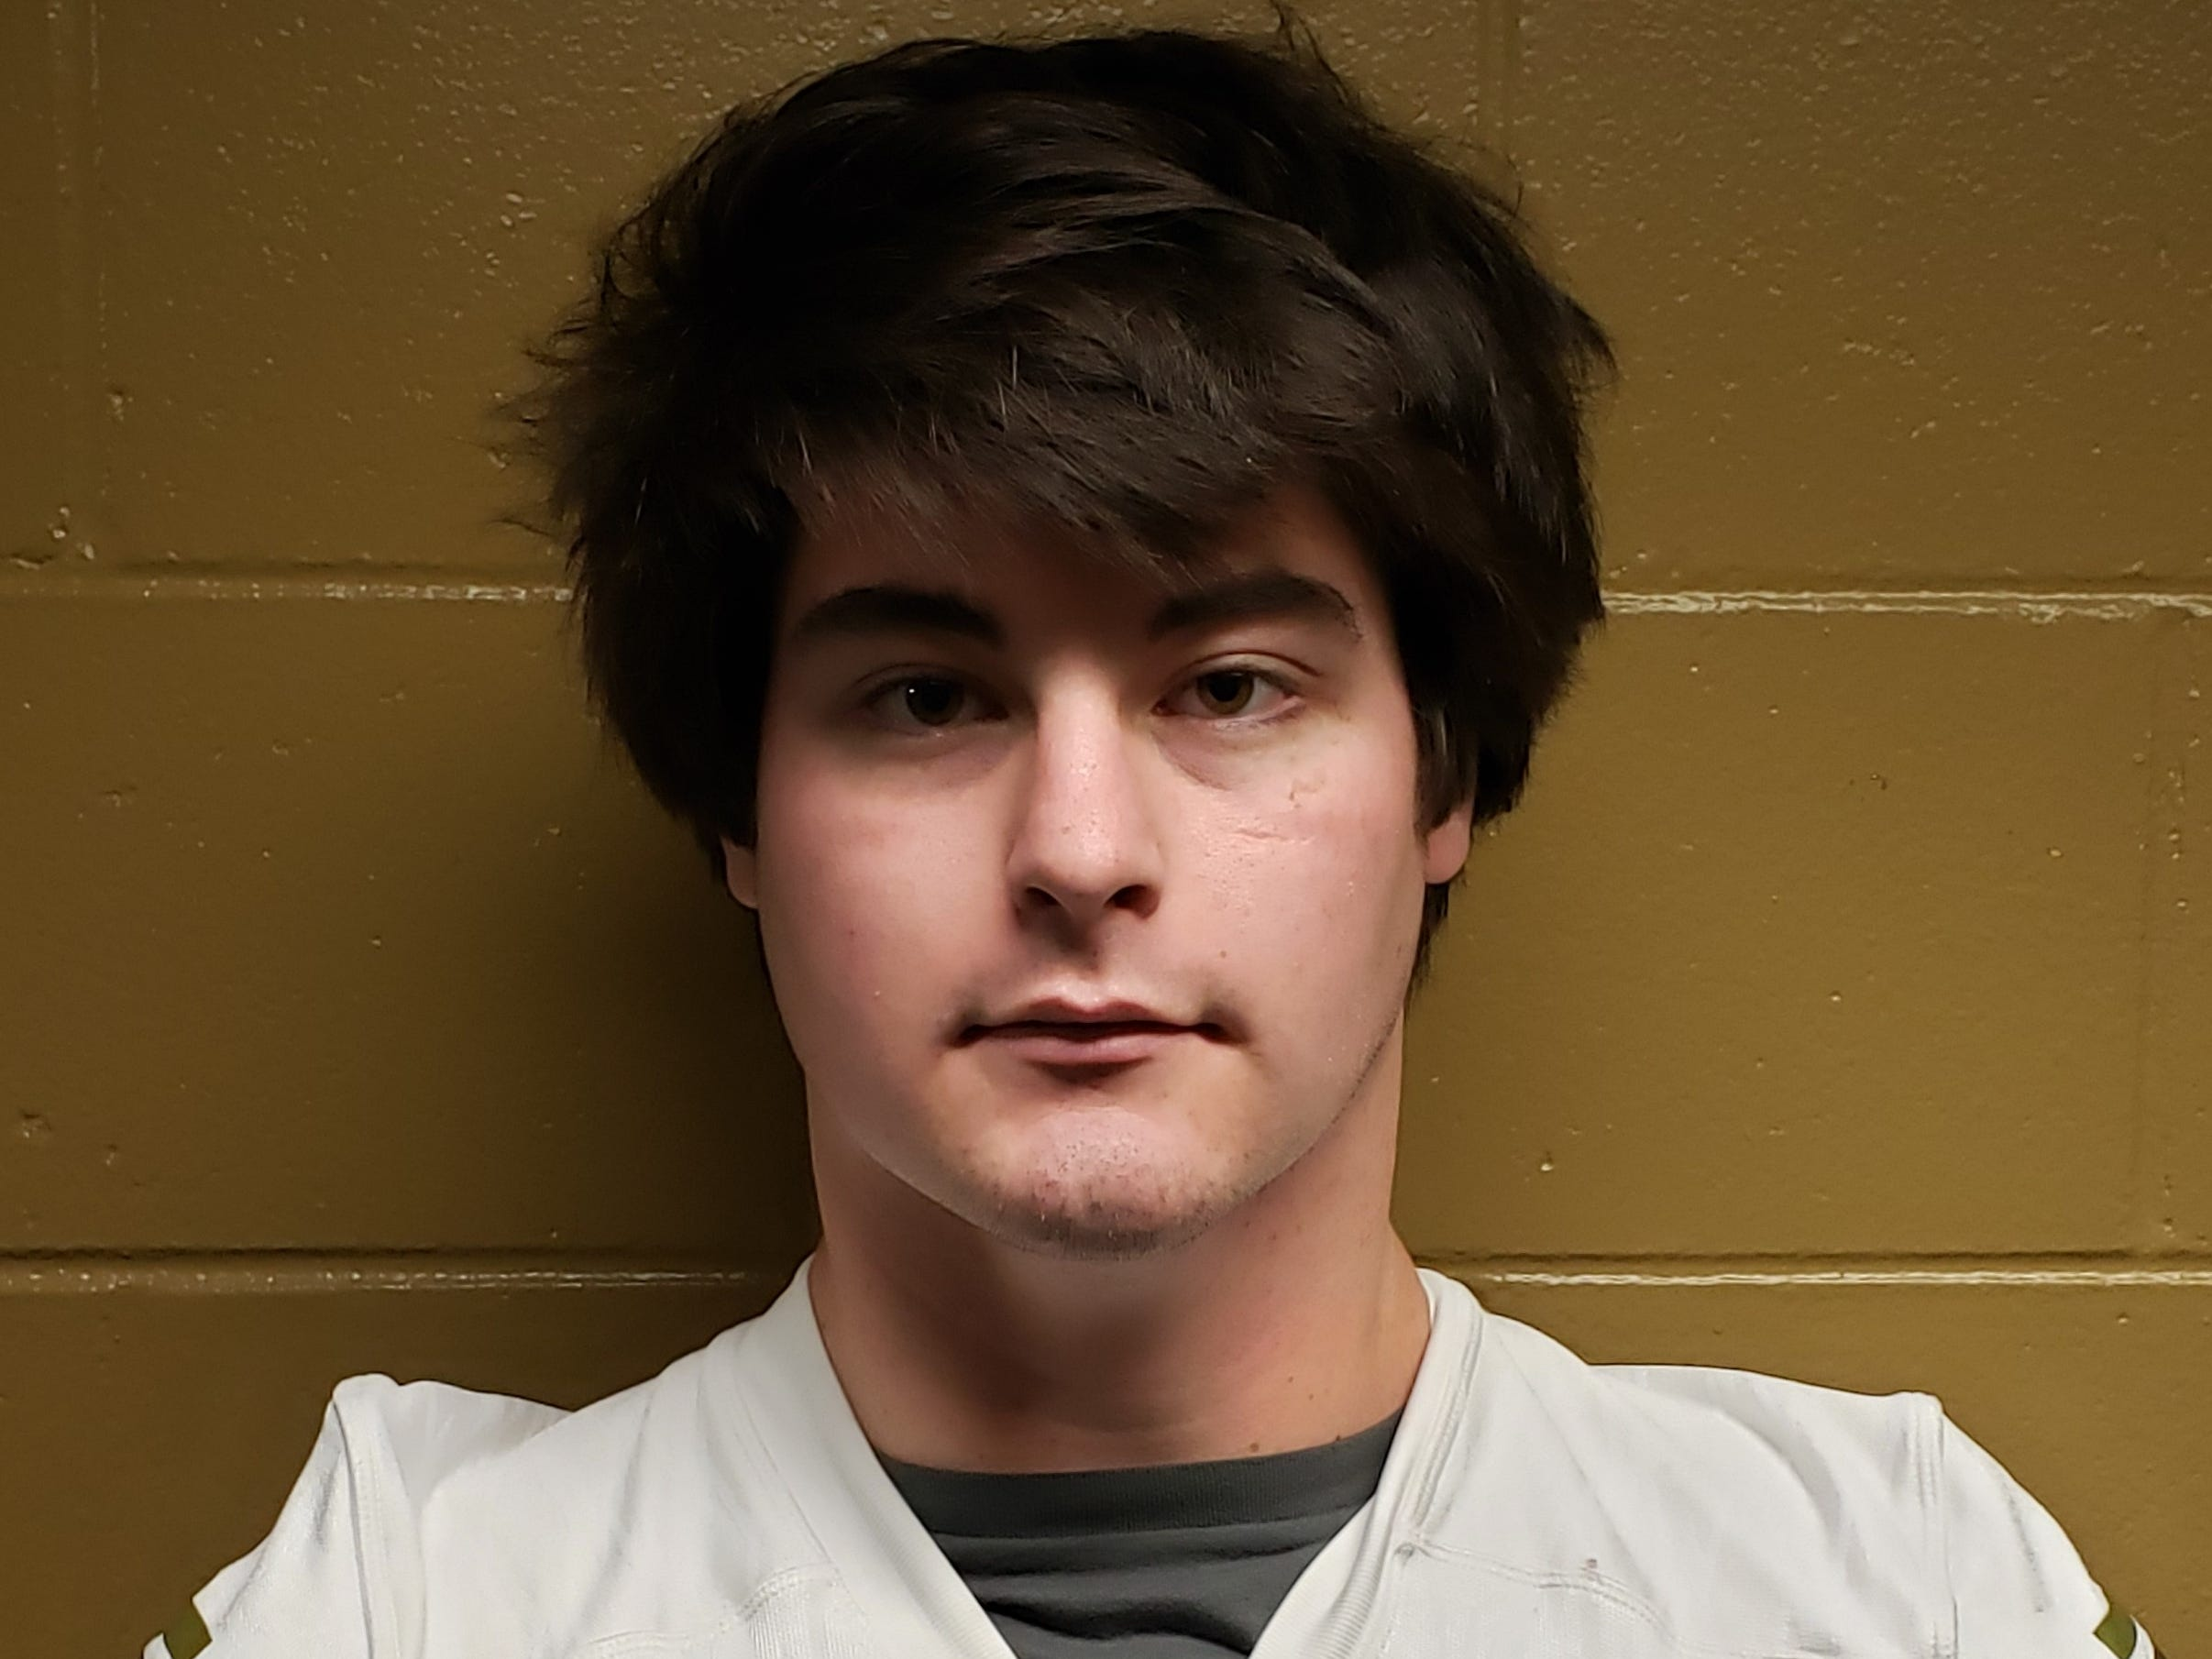 Lincoln senior offensive lineman Evan Quigley was named to the 2018 All-Big Bend football first team for offense. STATS: 87%, 42 pancakes, 16 knockdowns